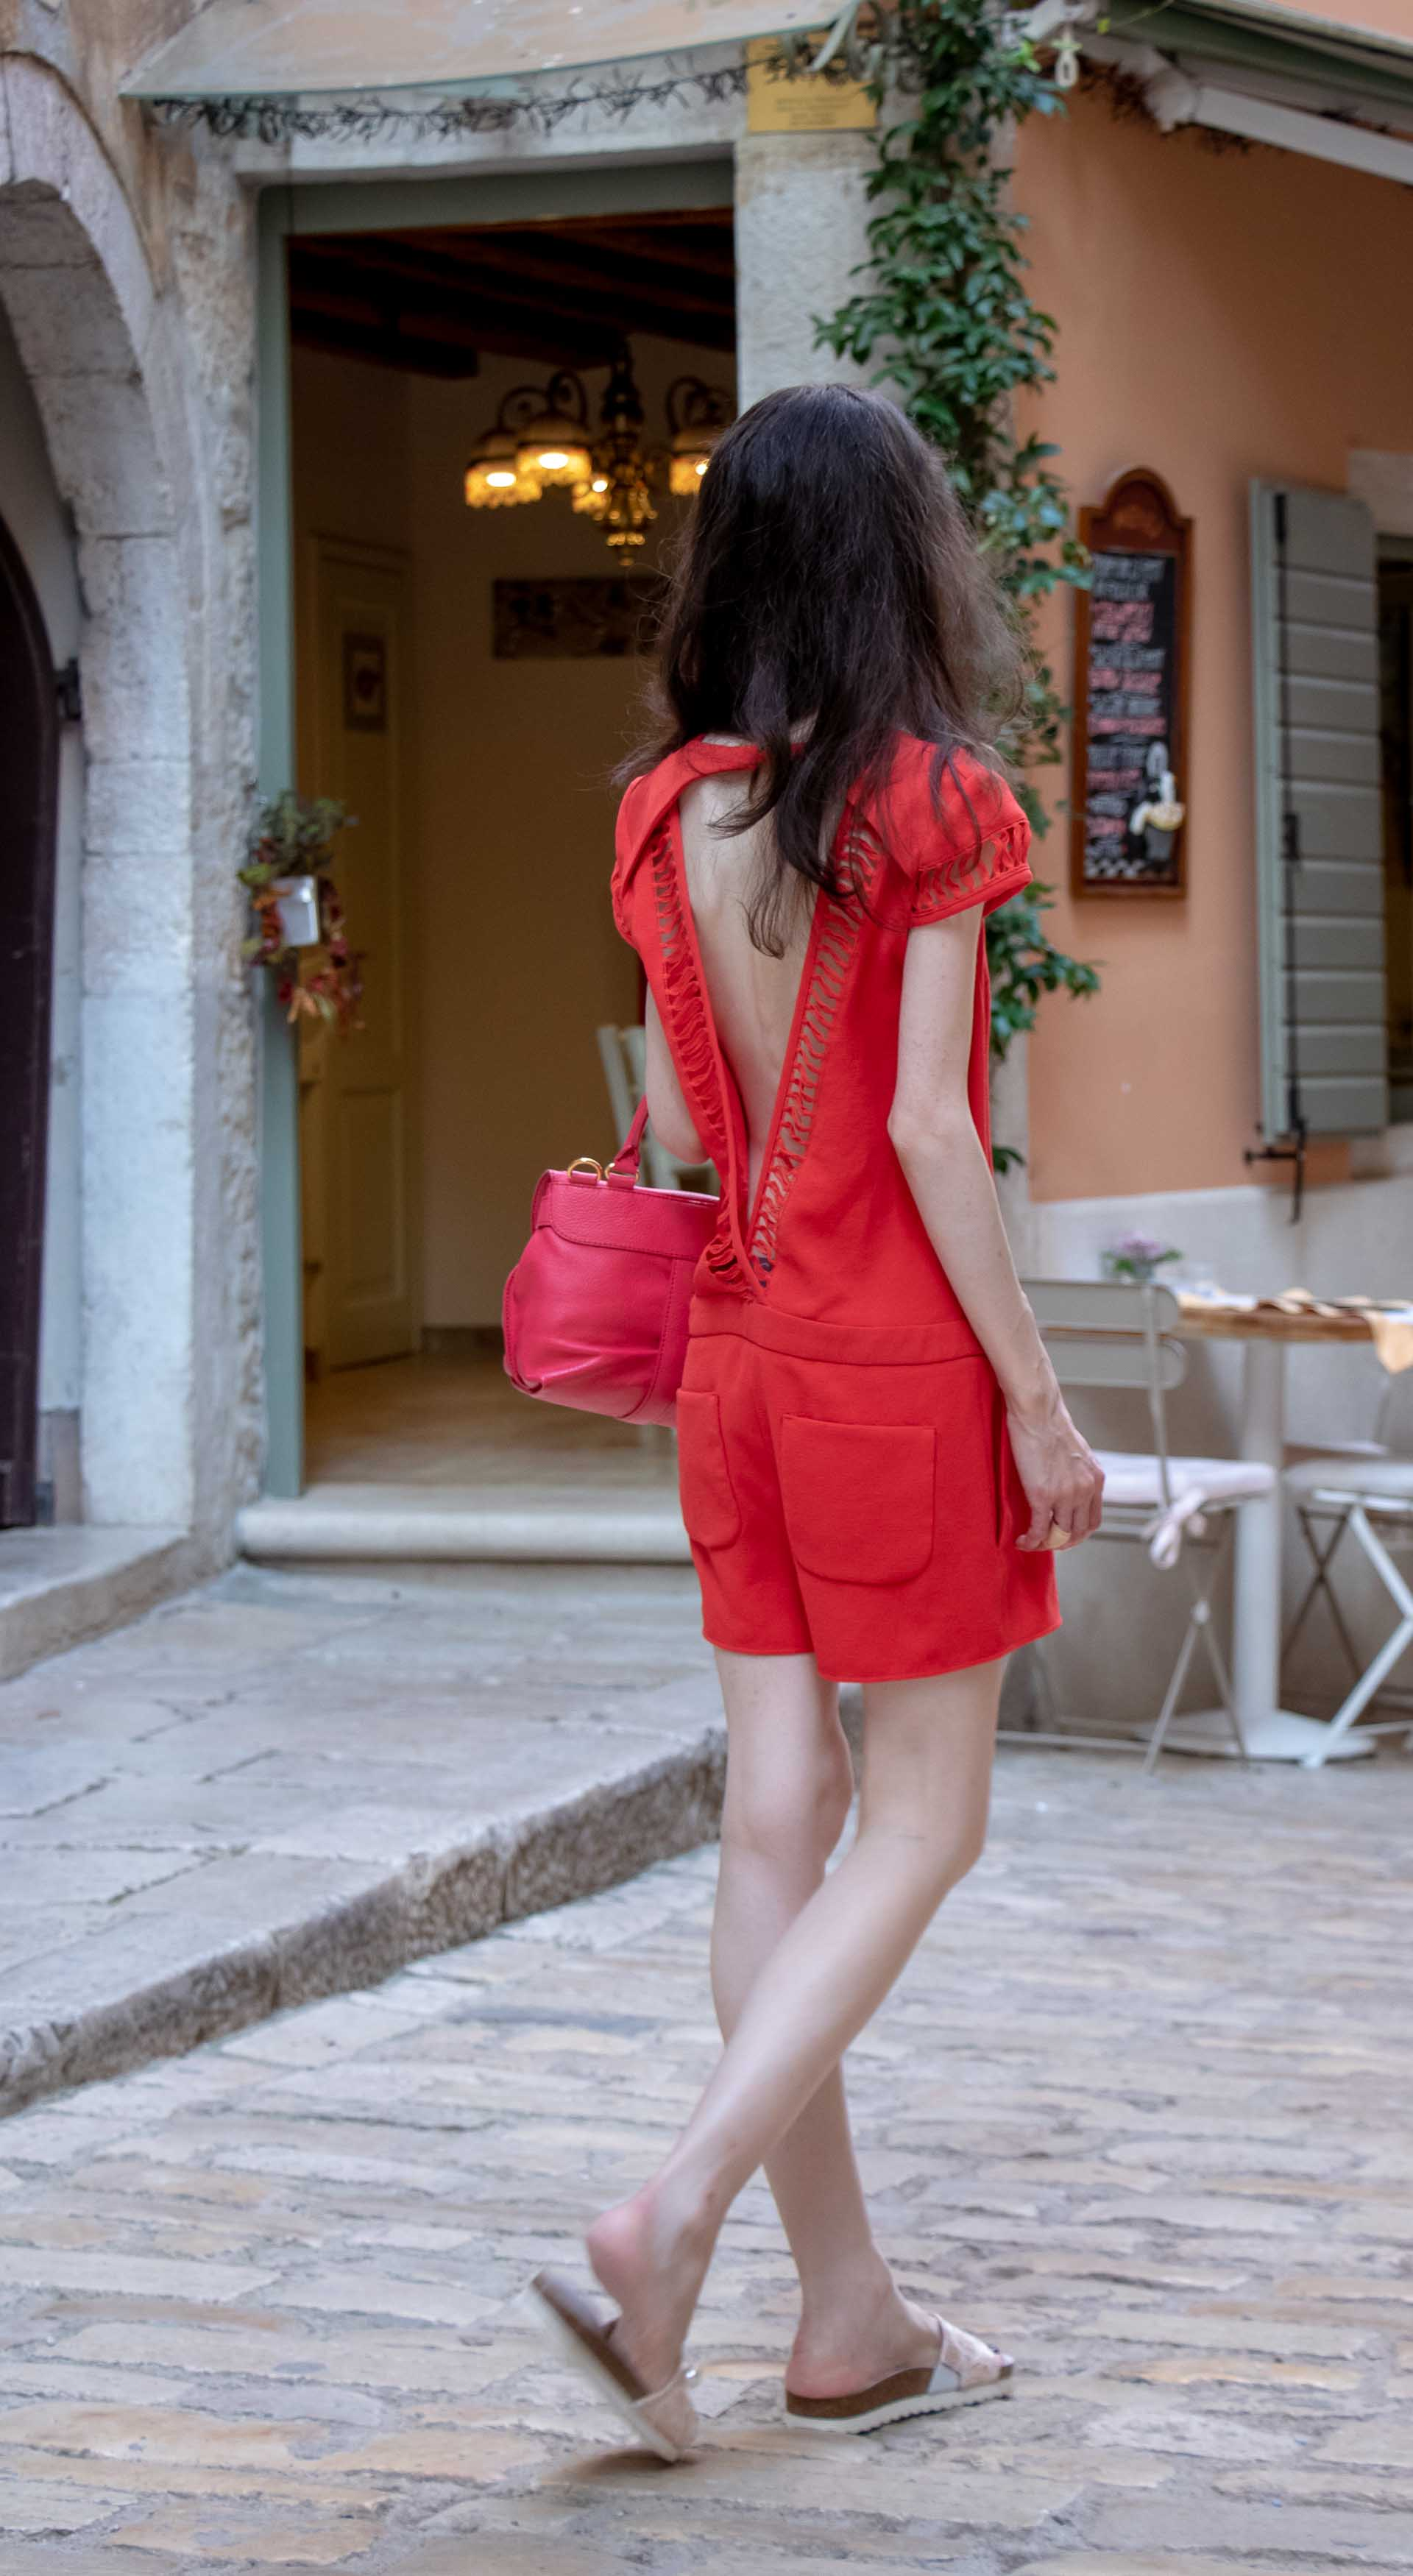 Fashion Blogger Veronika Lipar of Brunette from Wall Street wearing open back chic red romper, crystal-embellished lace luxe pool slides, pink top handle bag while walking down the narrow picturesque street in Rovinj